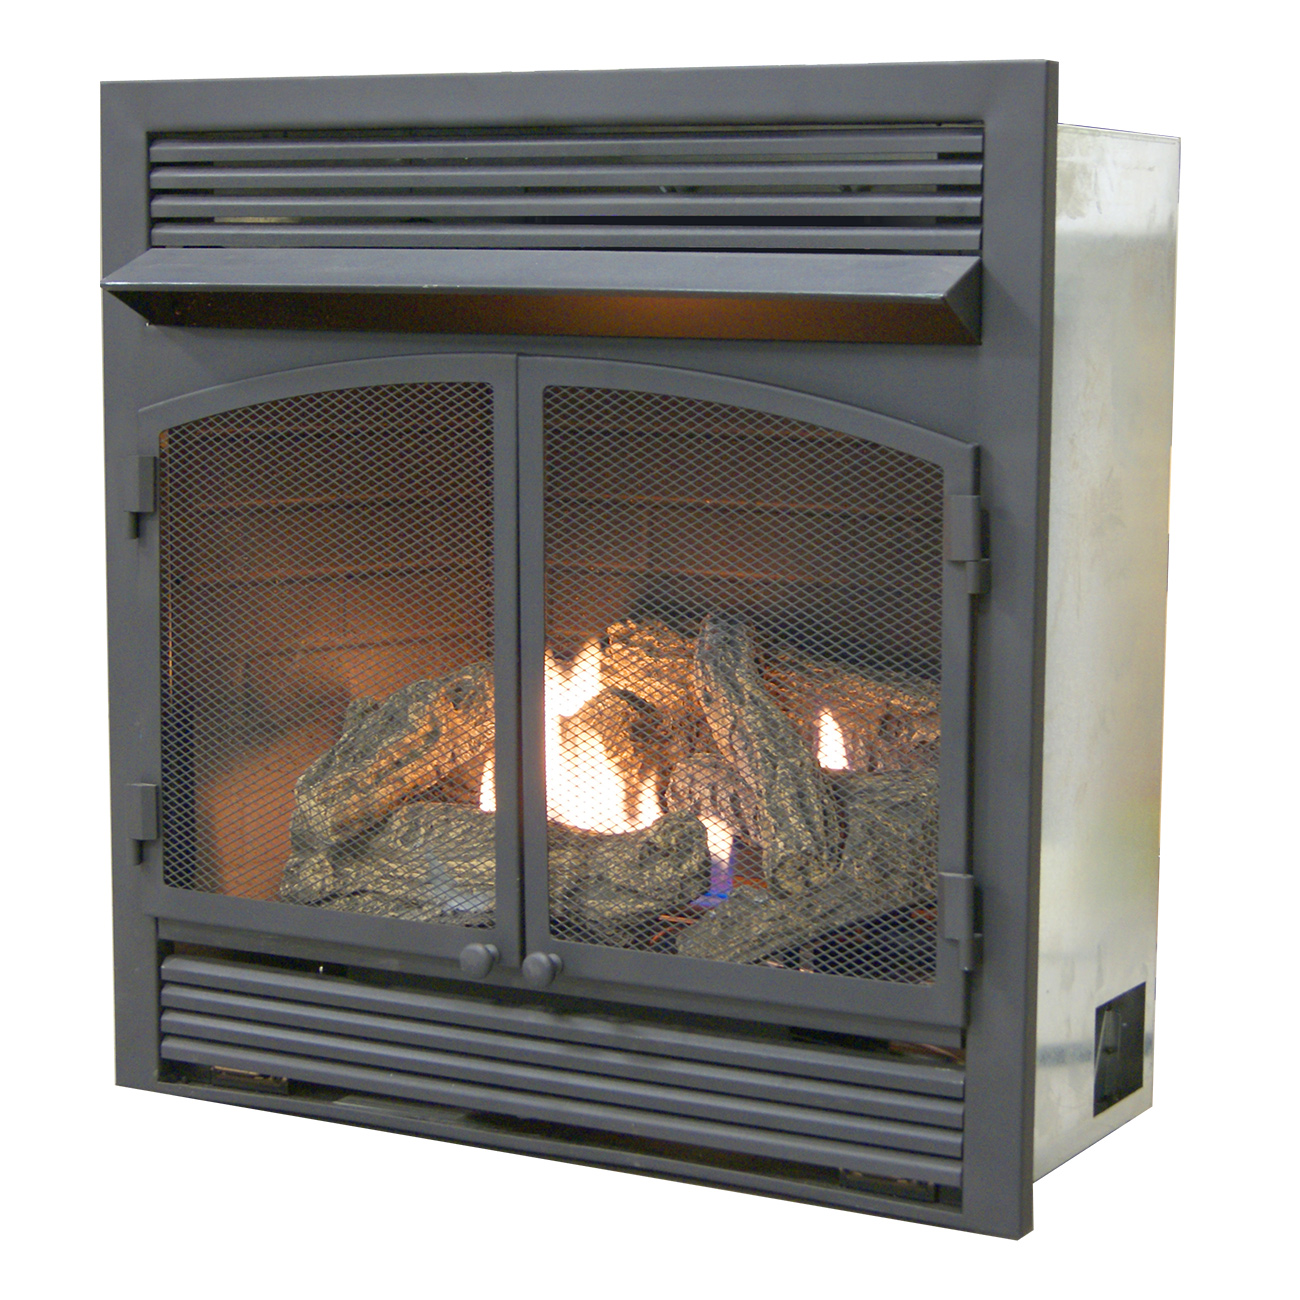 Dual Fireplace Insert Shop Procom 35 In W 32 000 Btu Black